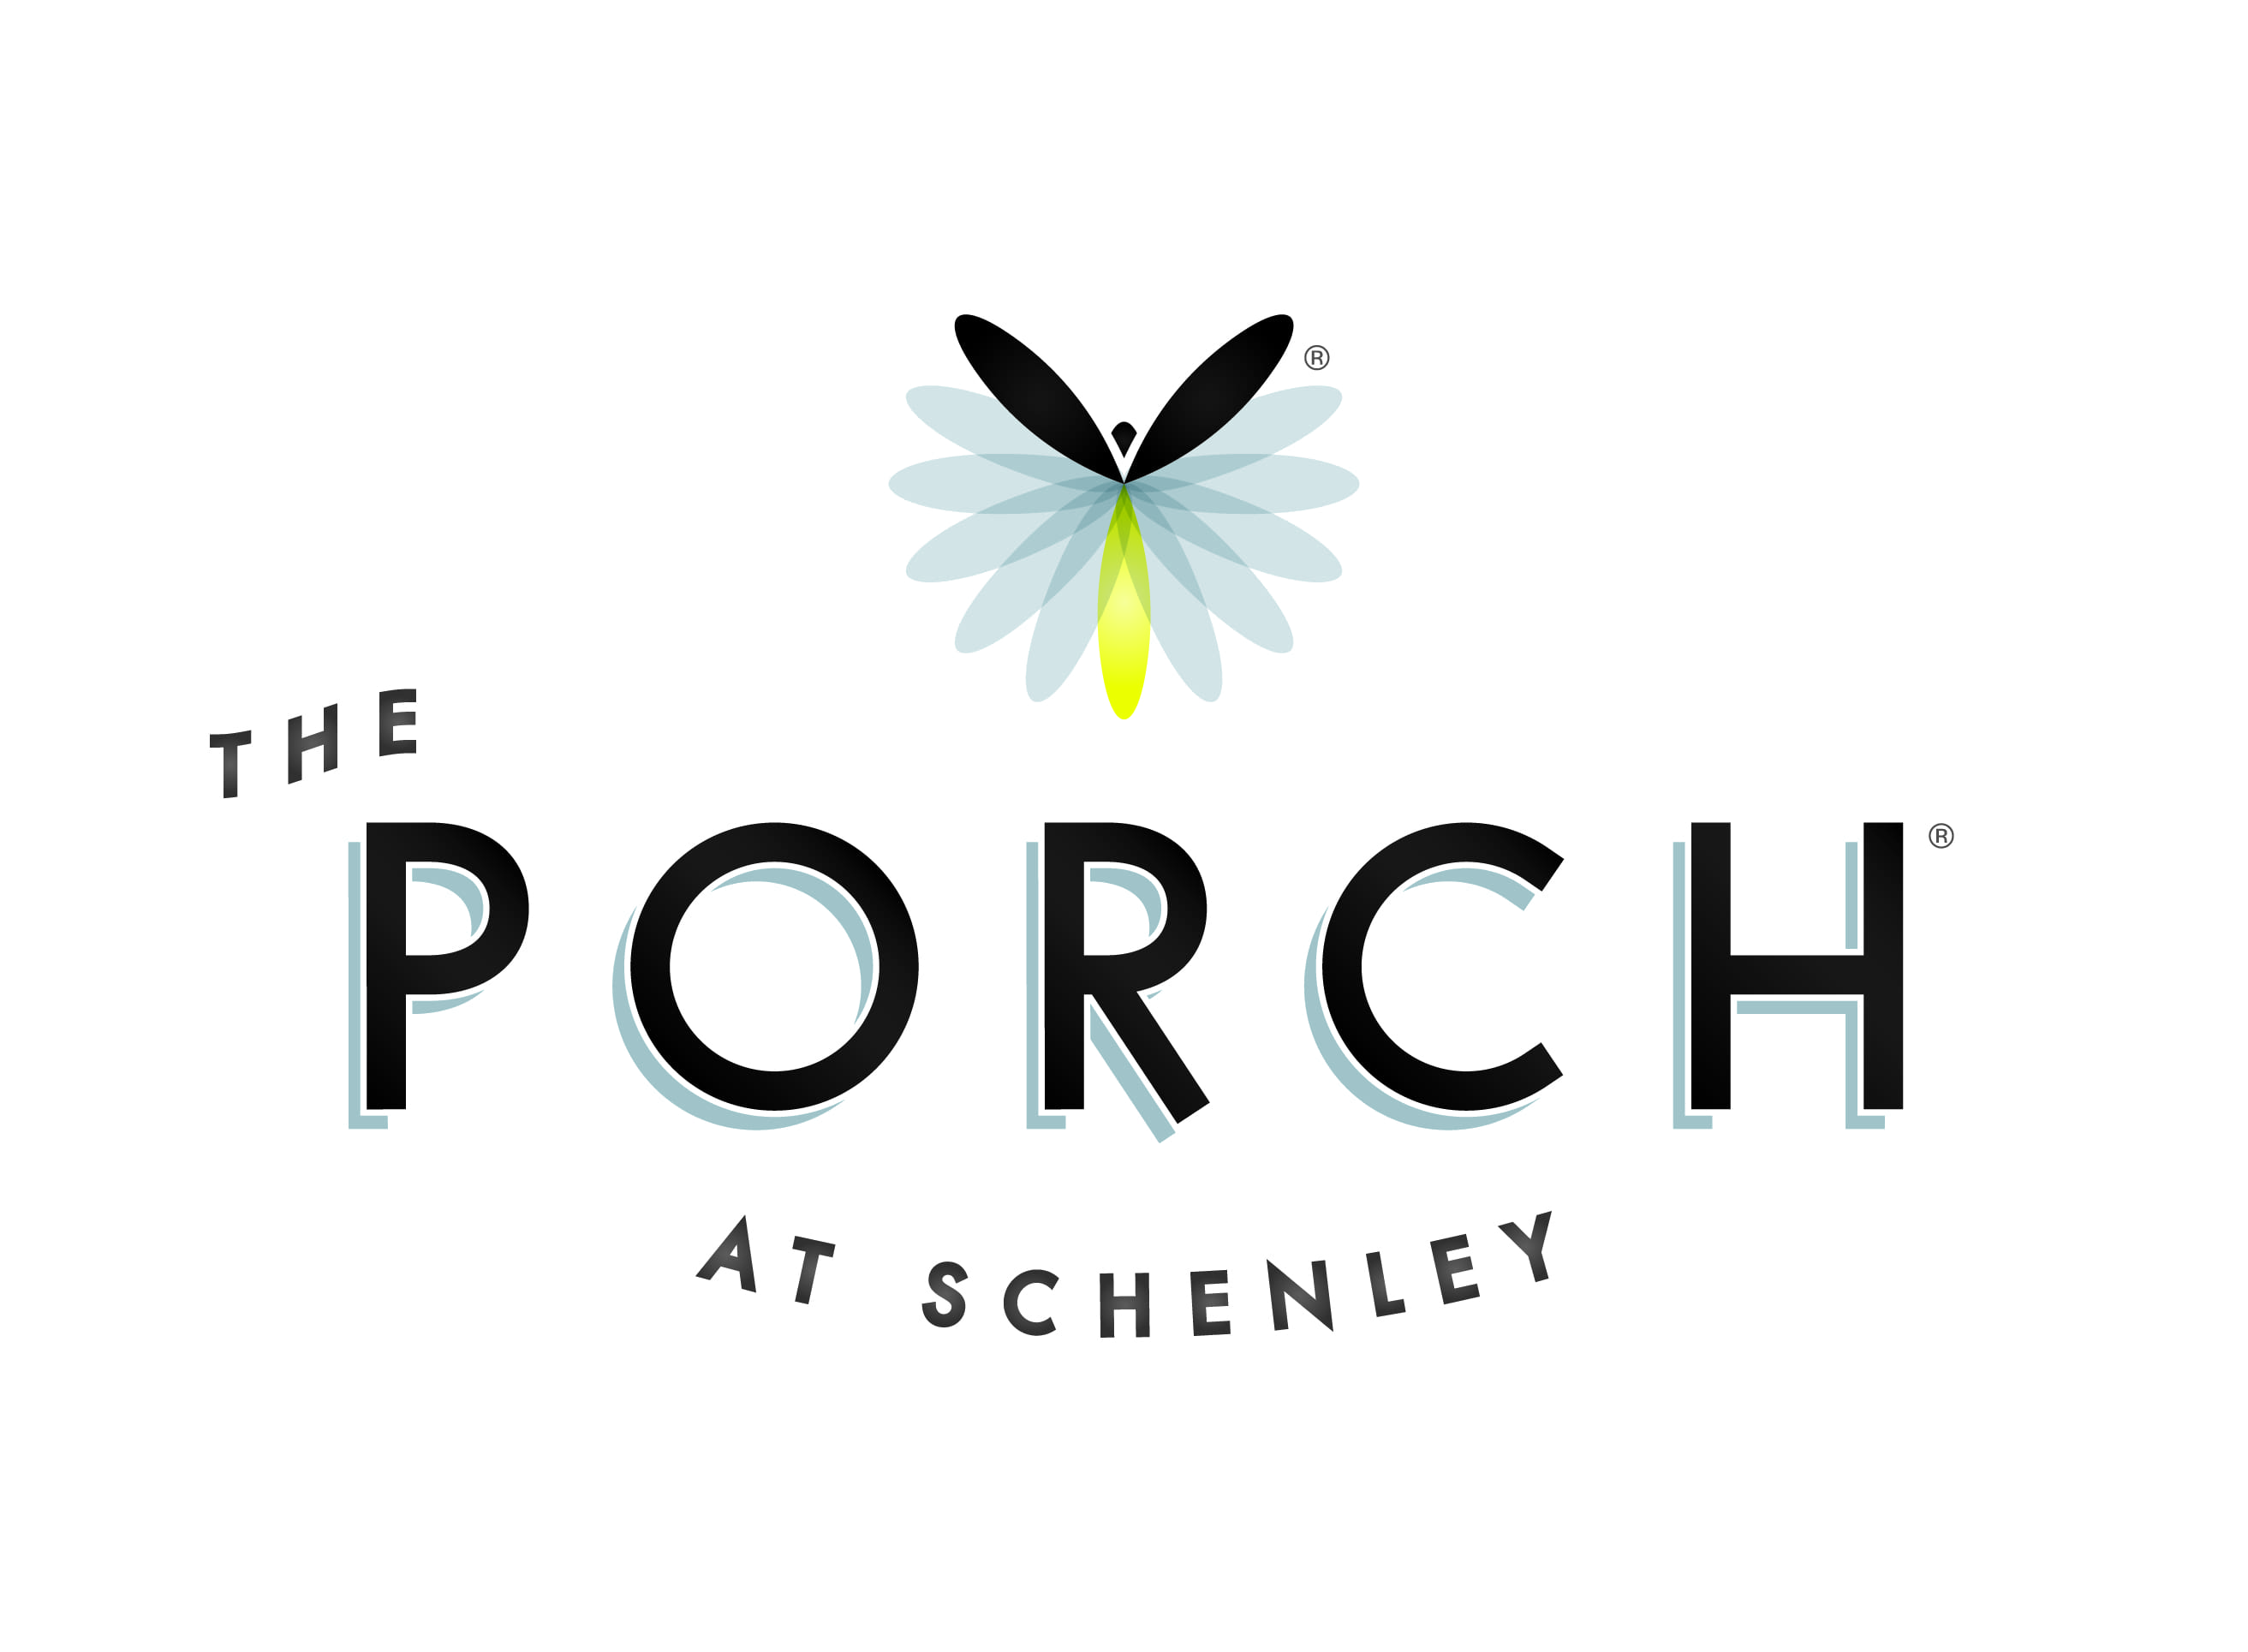 http://pittsburghearthday.org/wp-content/uploads/2014/12/PORCH_Primary-logo.jpg